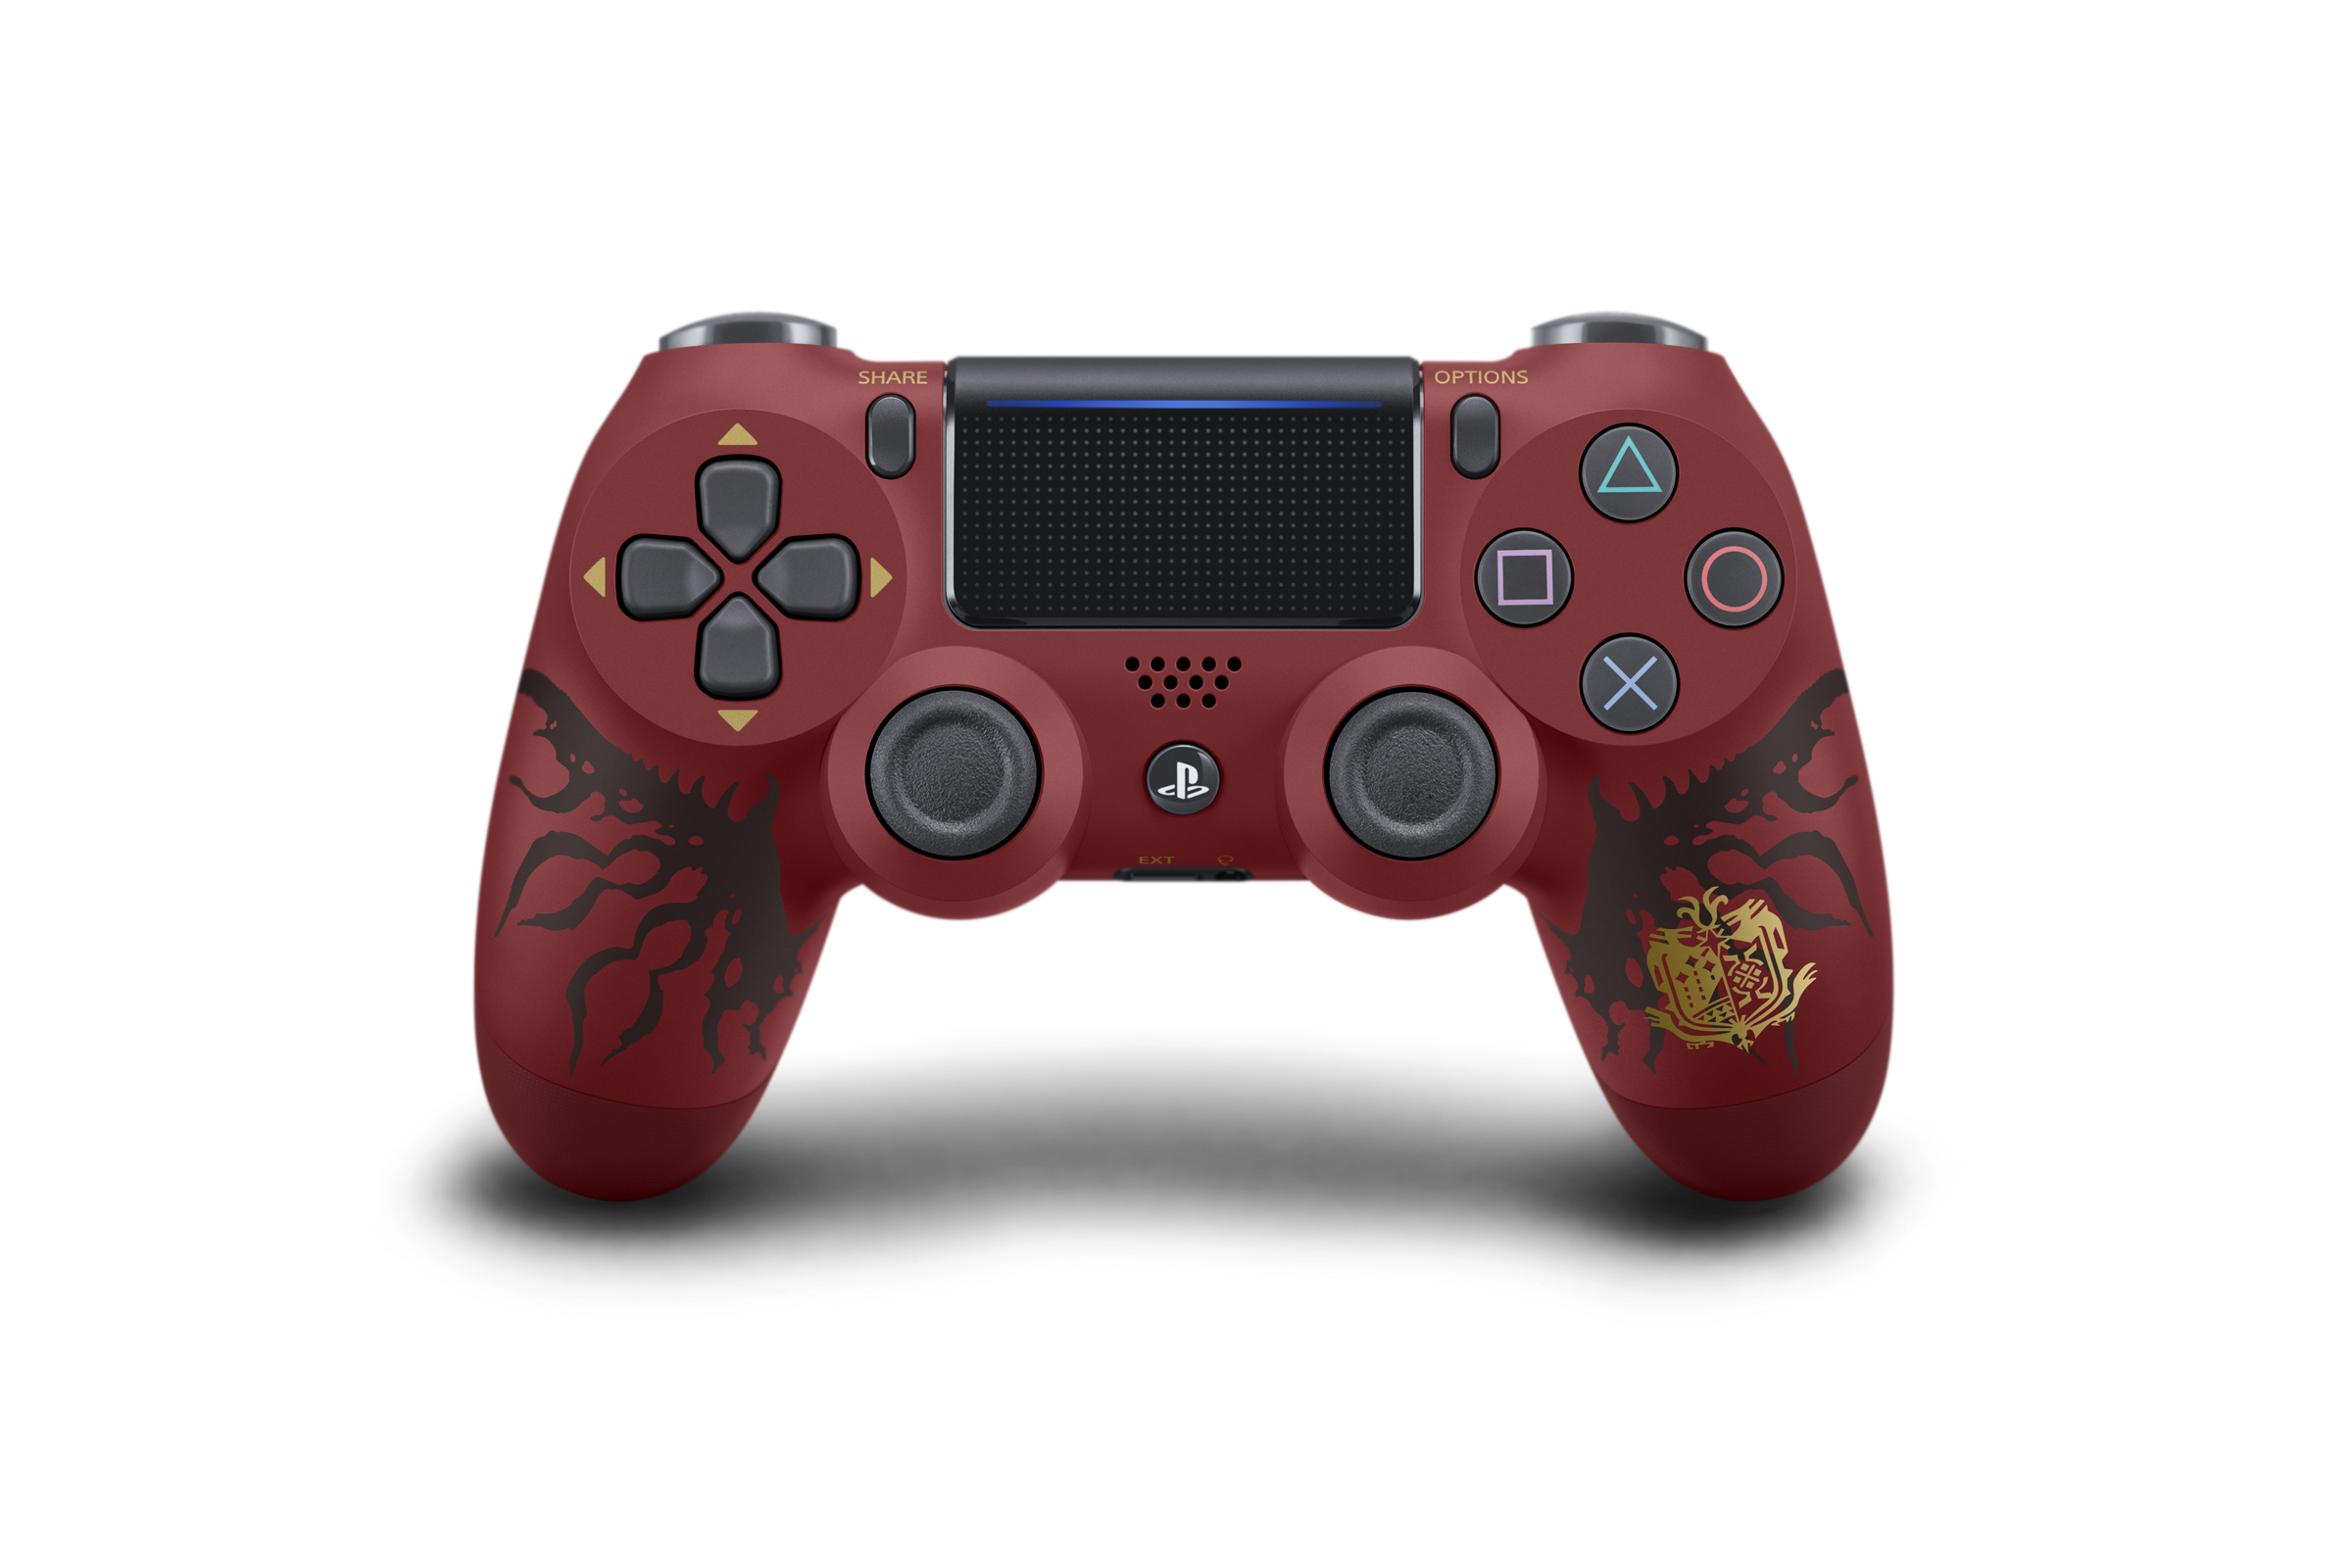 Sony is offering a Monster Hunter theme PS4 Pro and Controller bundle 1